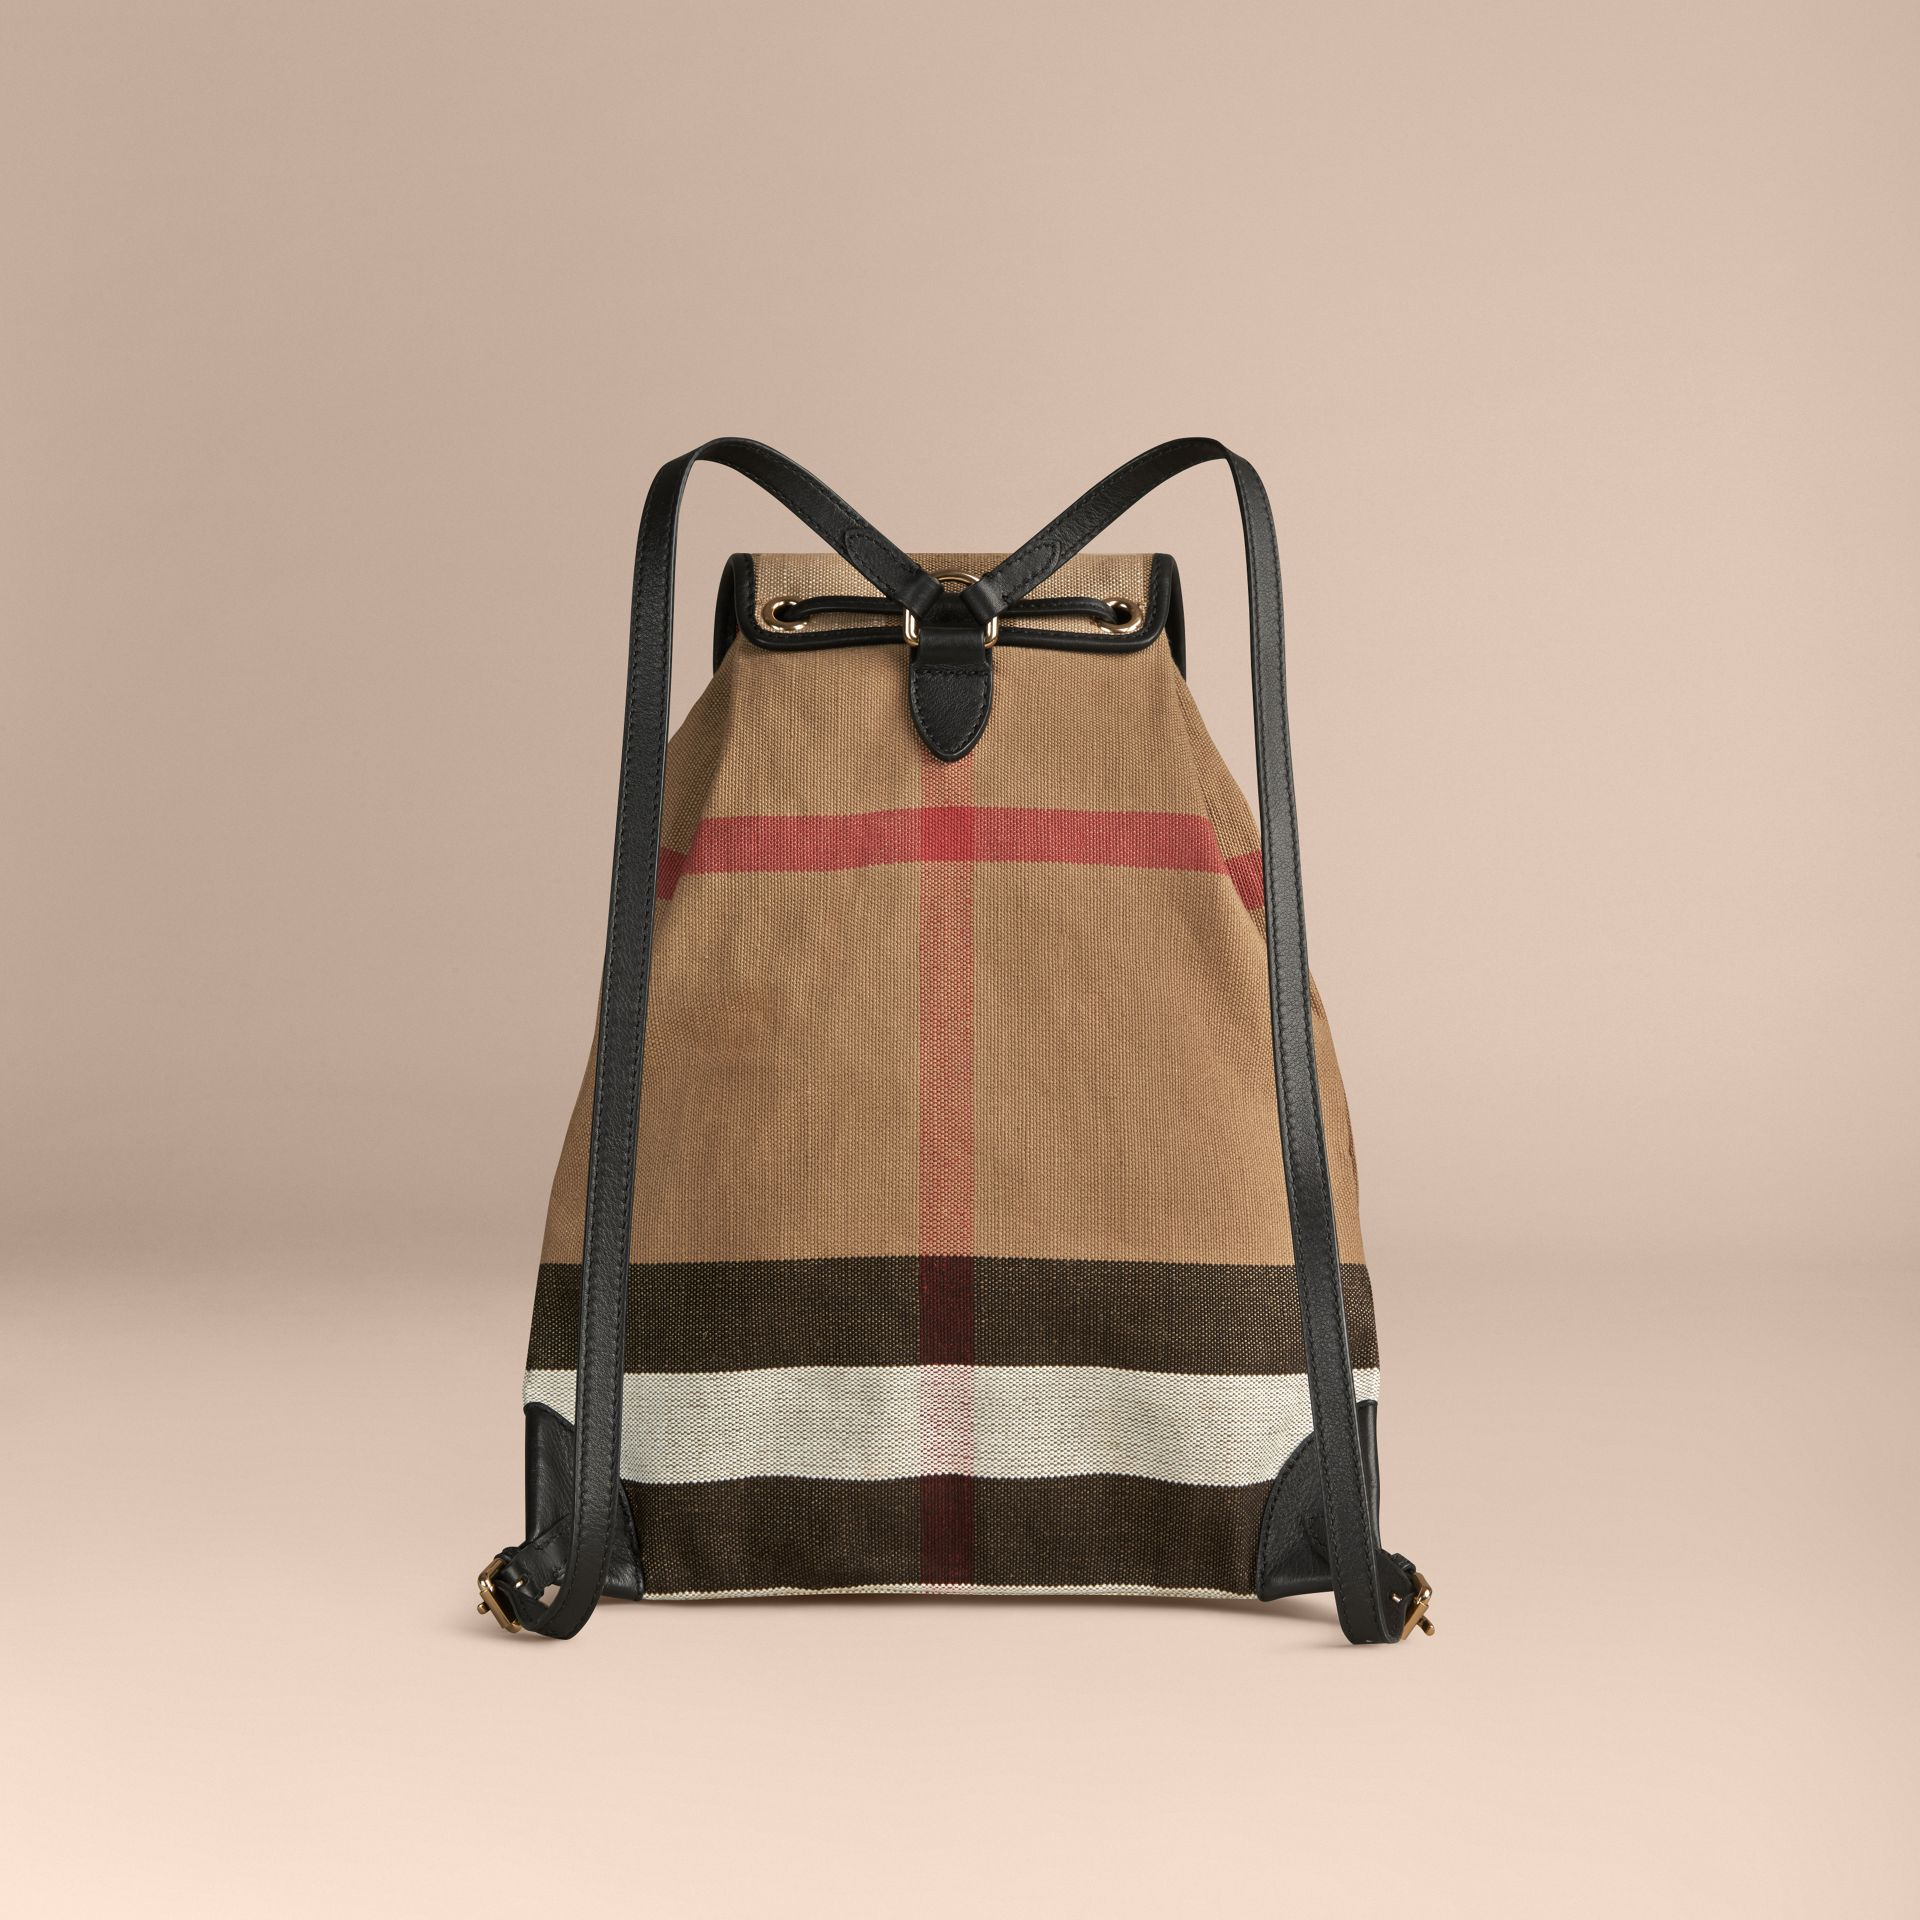 Black Canvas Check Backpack with Leather Trim Black - gallery image 2